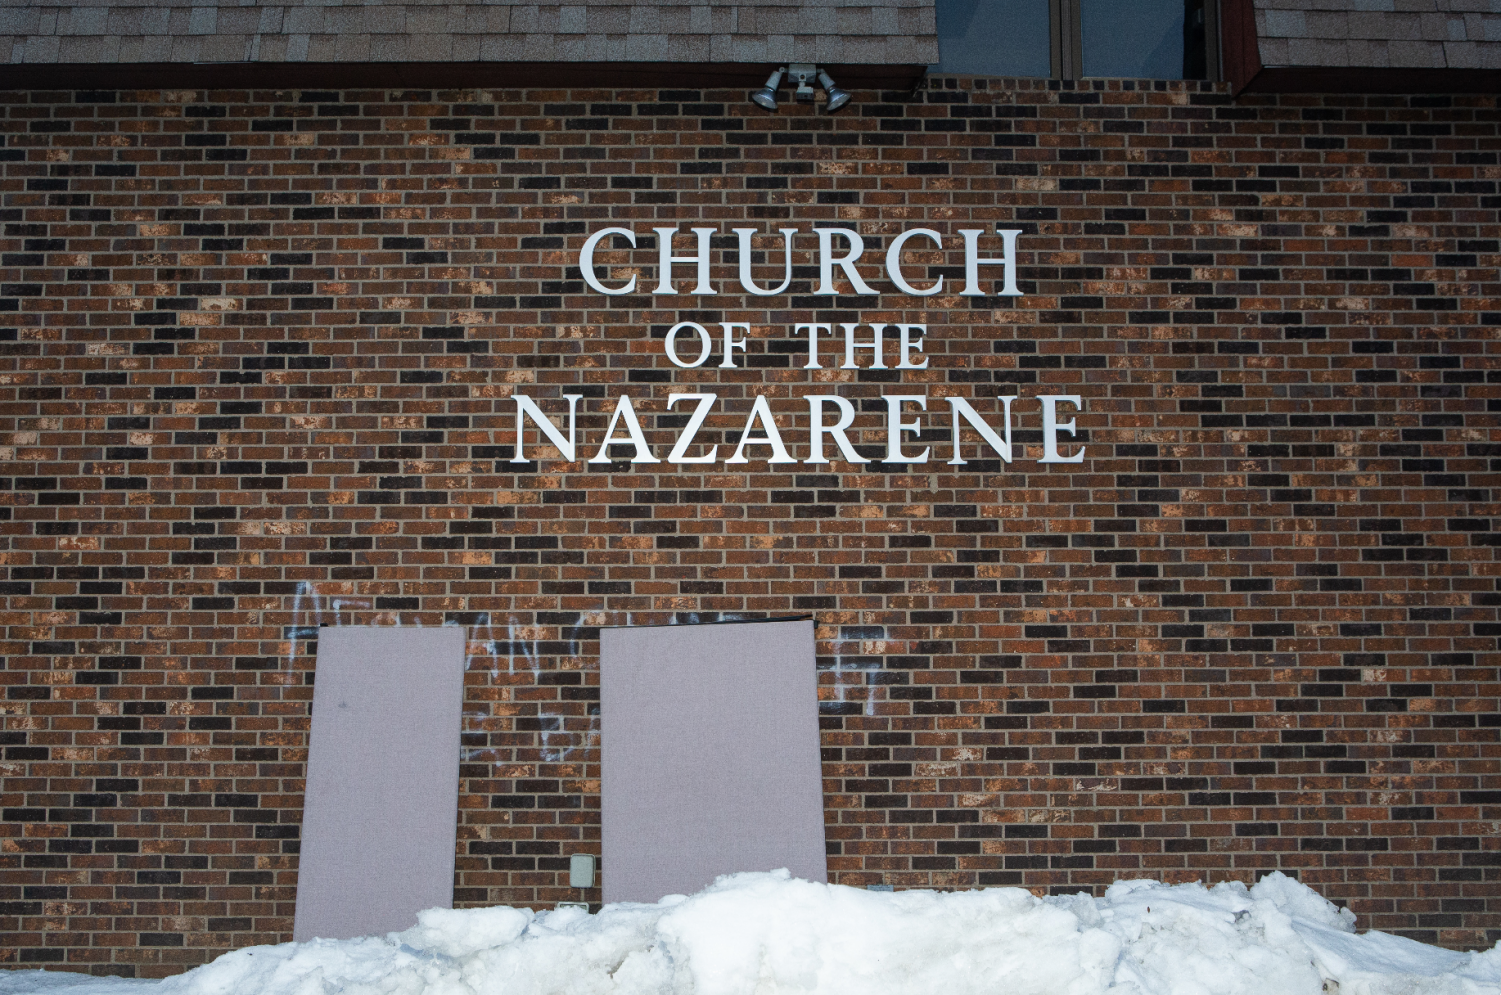 The Church of the Nazarene is seen on Monday, March 4, 2019. The church was vandalized with derogatory racial slurs and swastikas.